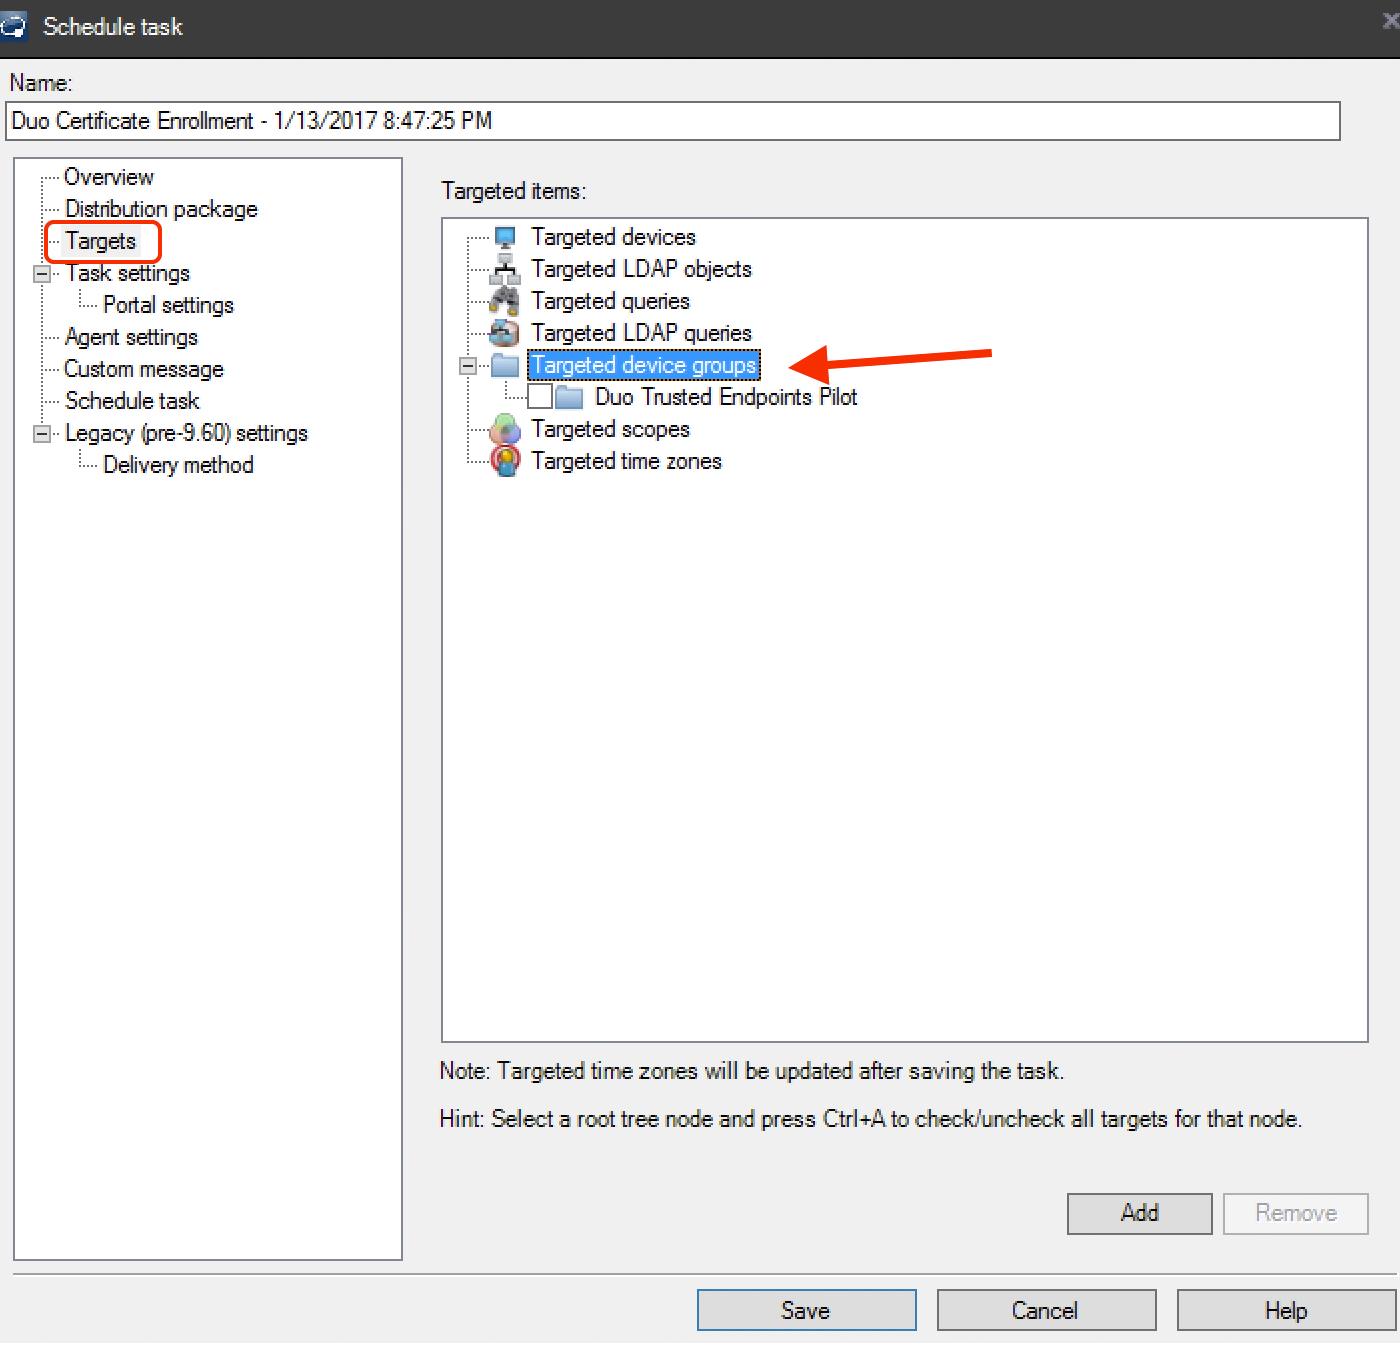 LANDESK Endpoint Certificate Deployment | Duo Security